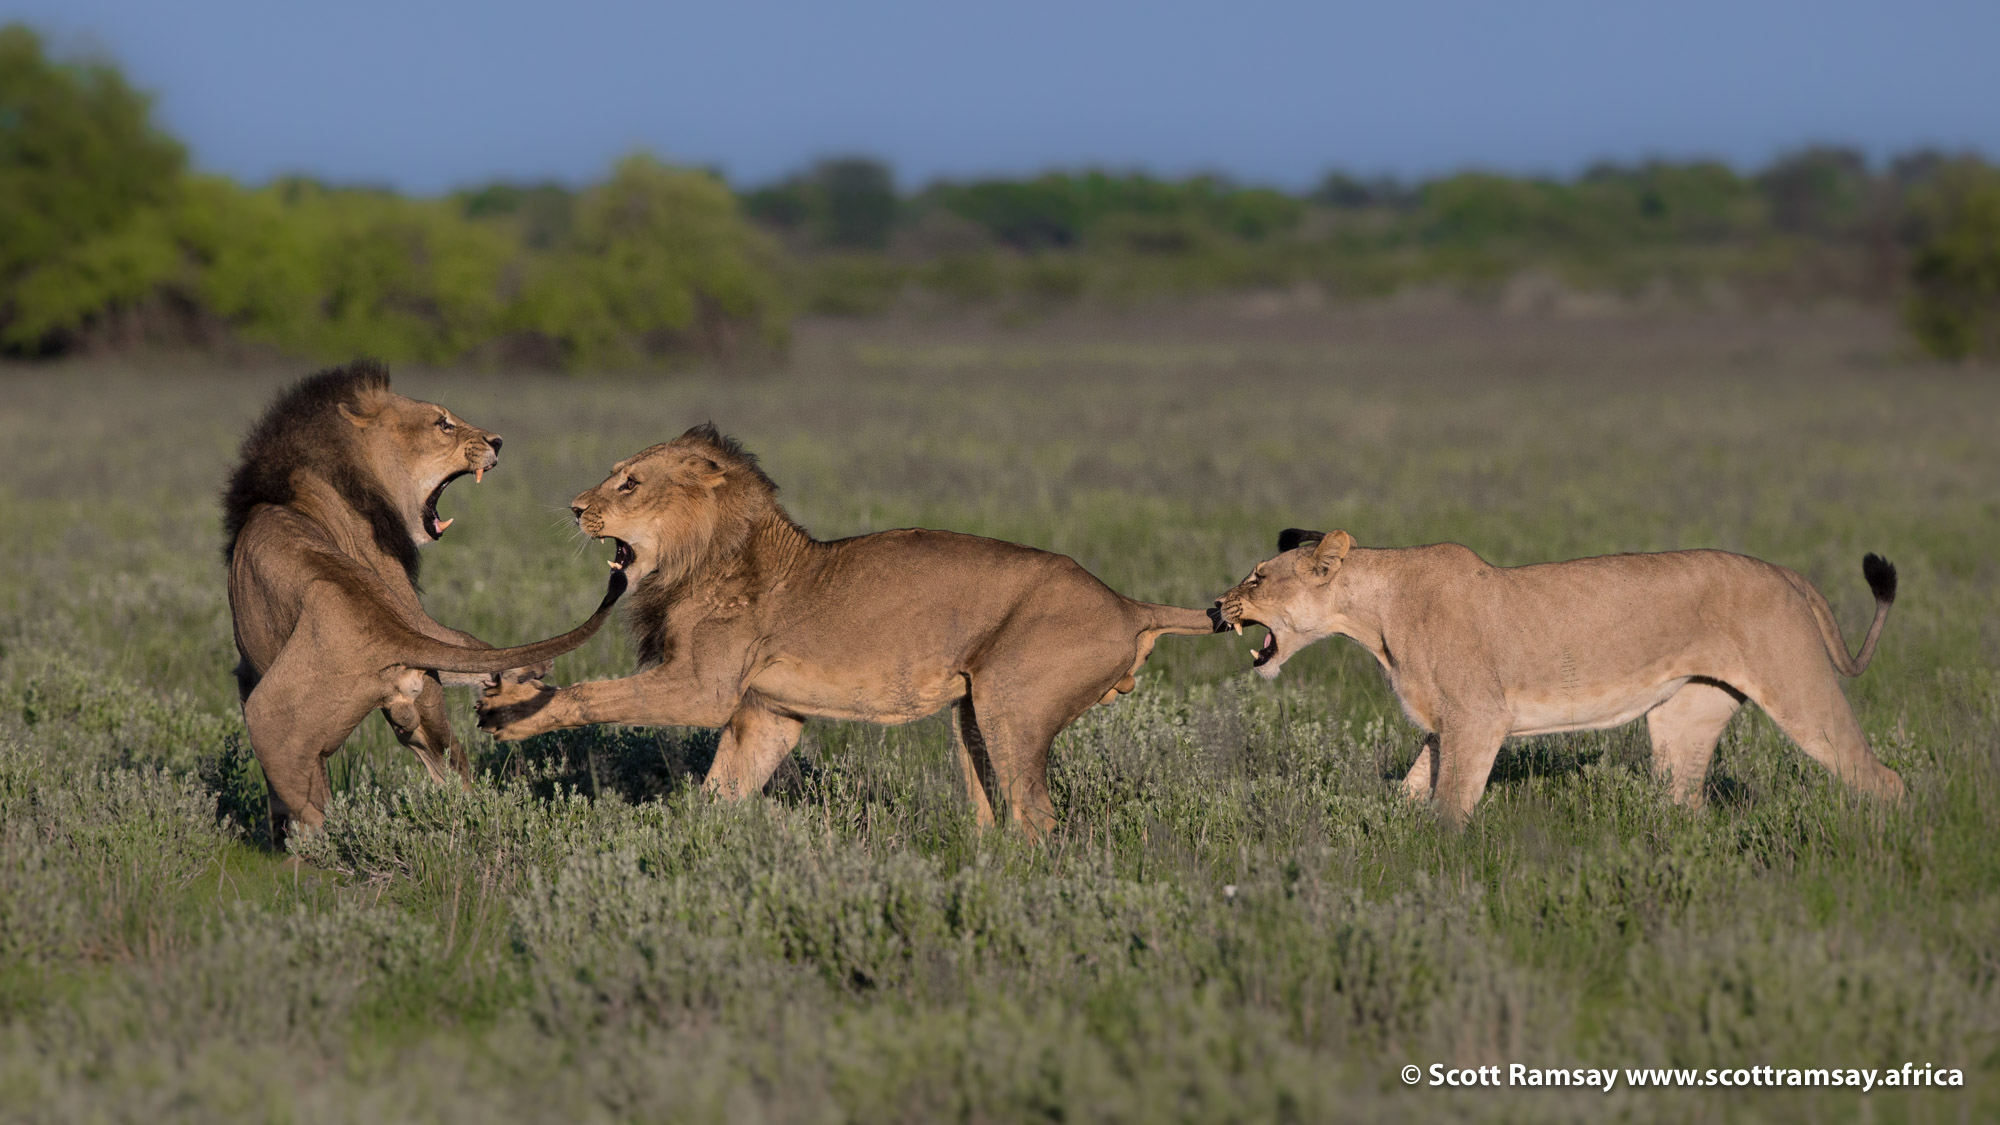 Hey! What you want here!? The lions clash, but it's a brief territorial skirmish, nothing more than some moody behaviour. Perhaps the bigger male once held the territory, but lost it to the younger male, and the lion politics were still being sorted out.